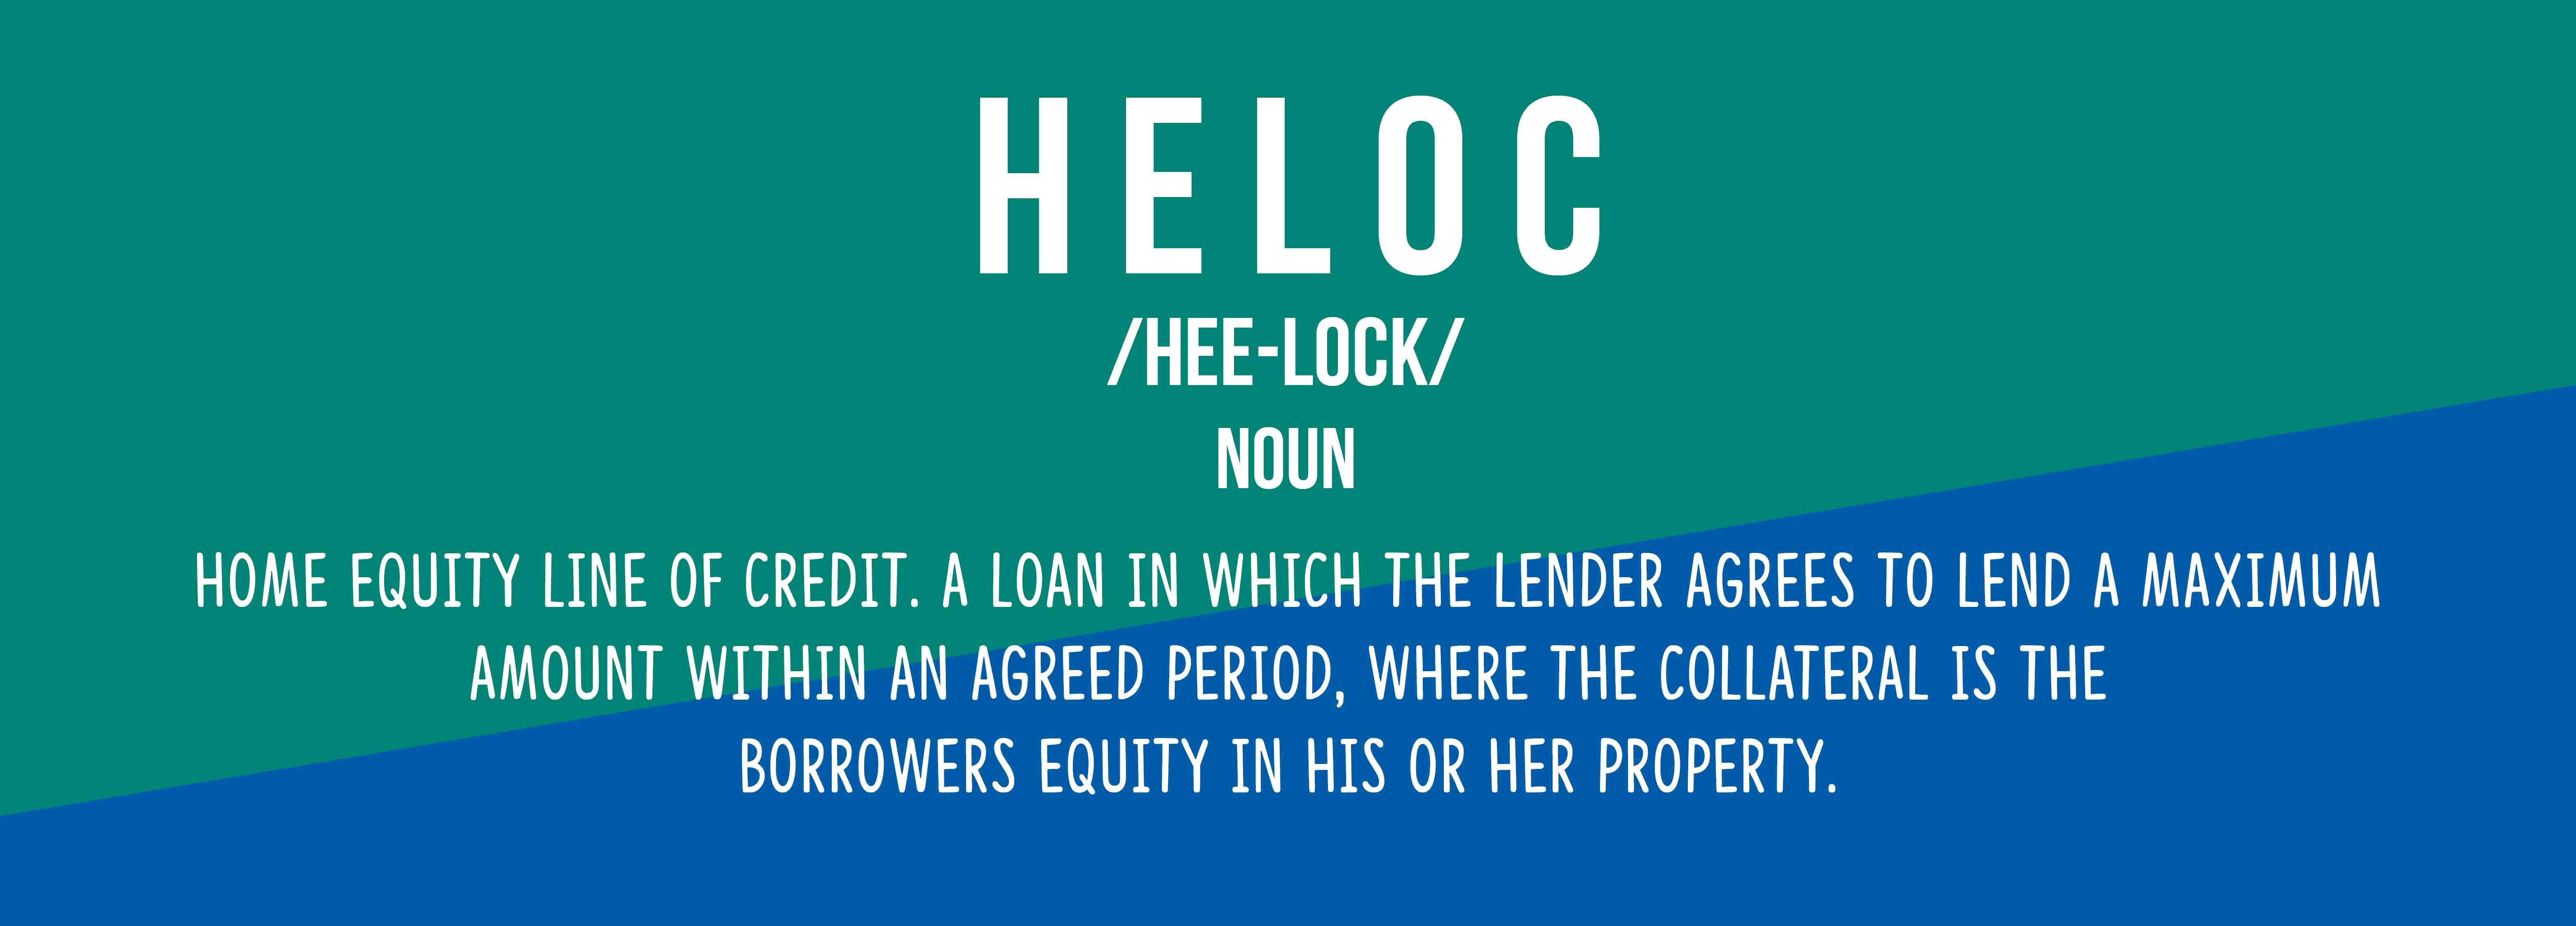 Image of definition of Heloc